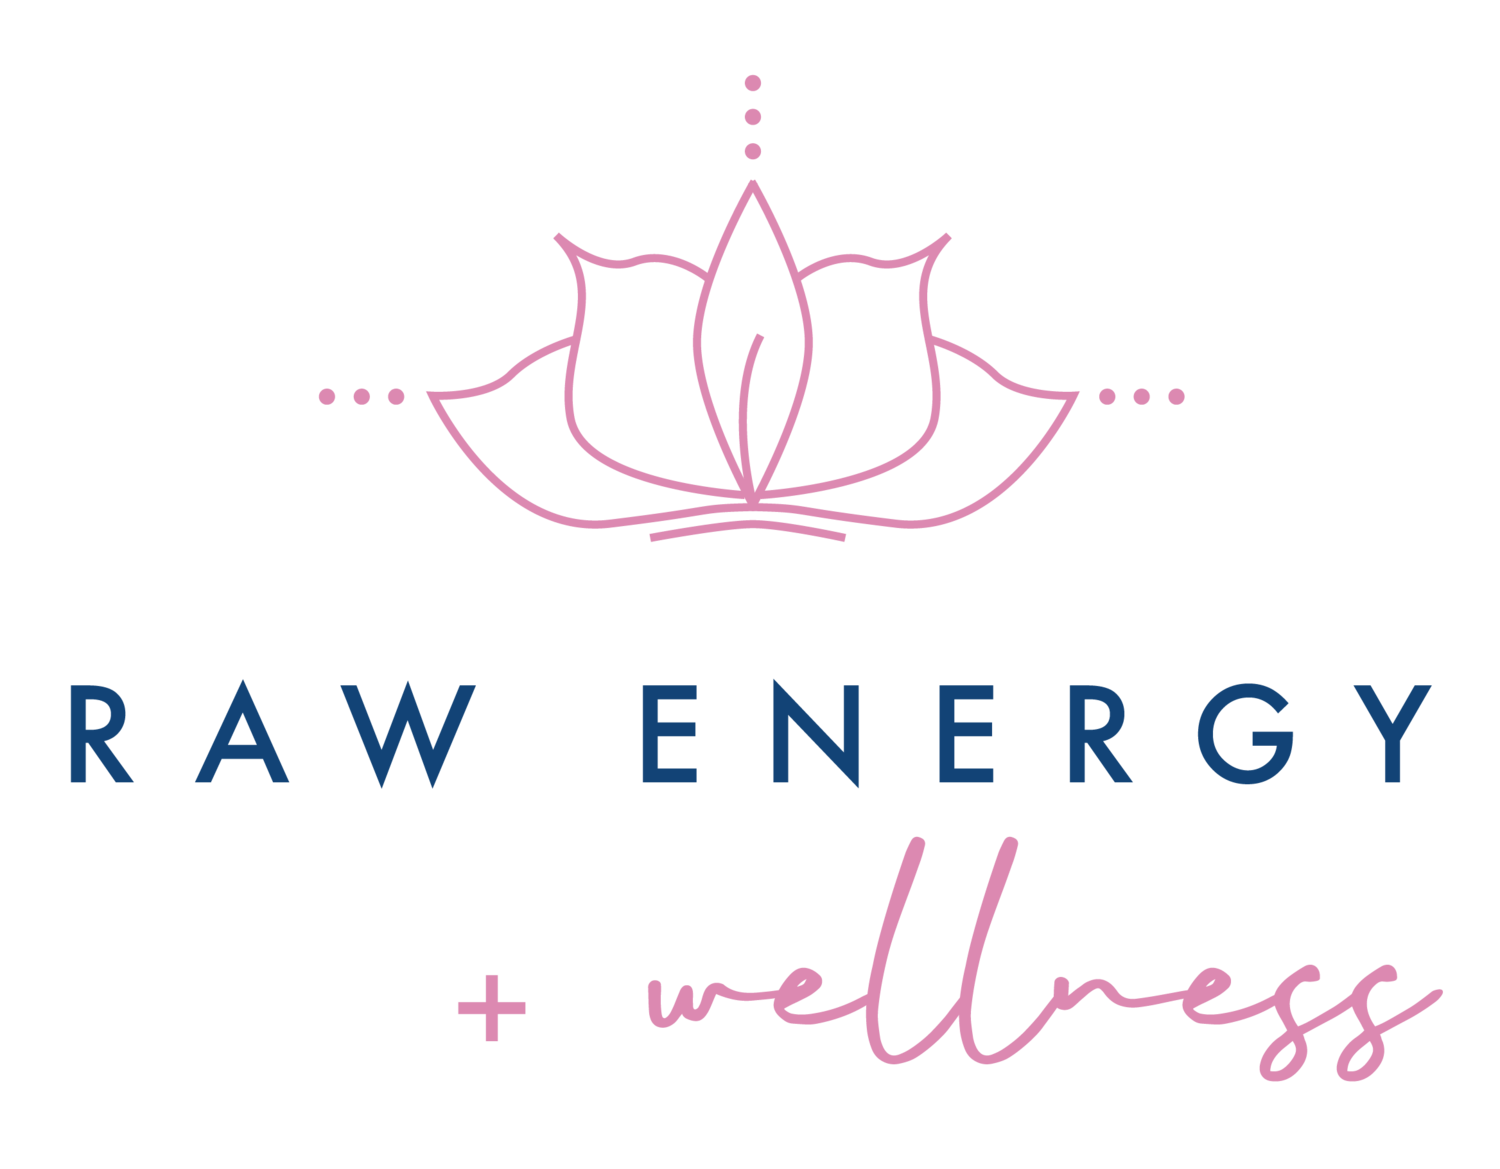 Raw Energy + Wellness